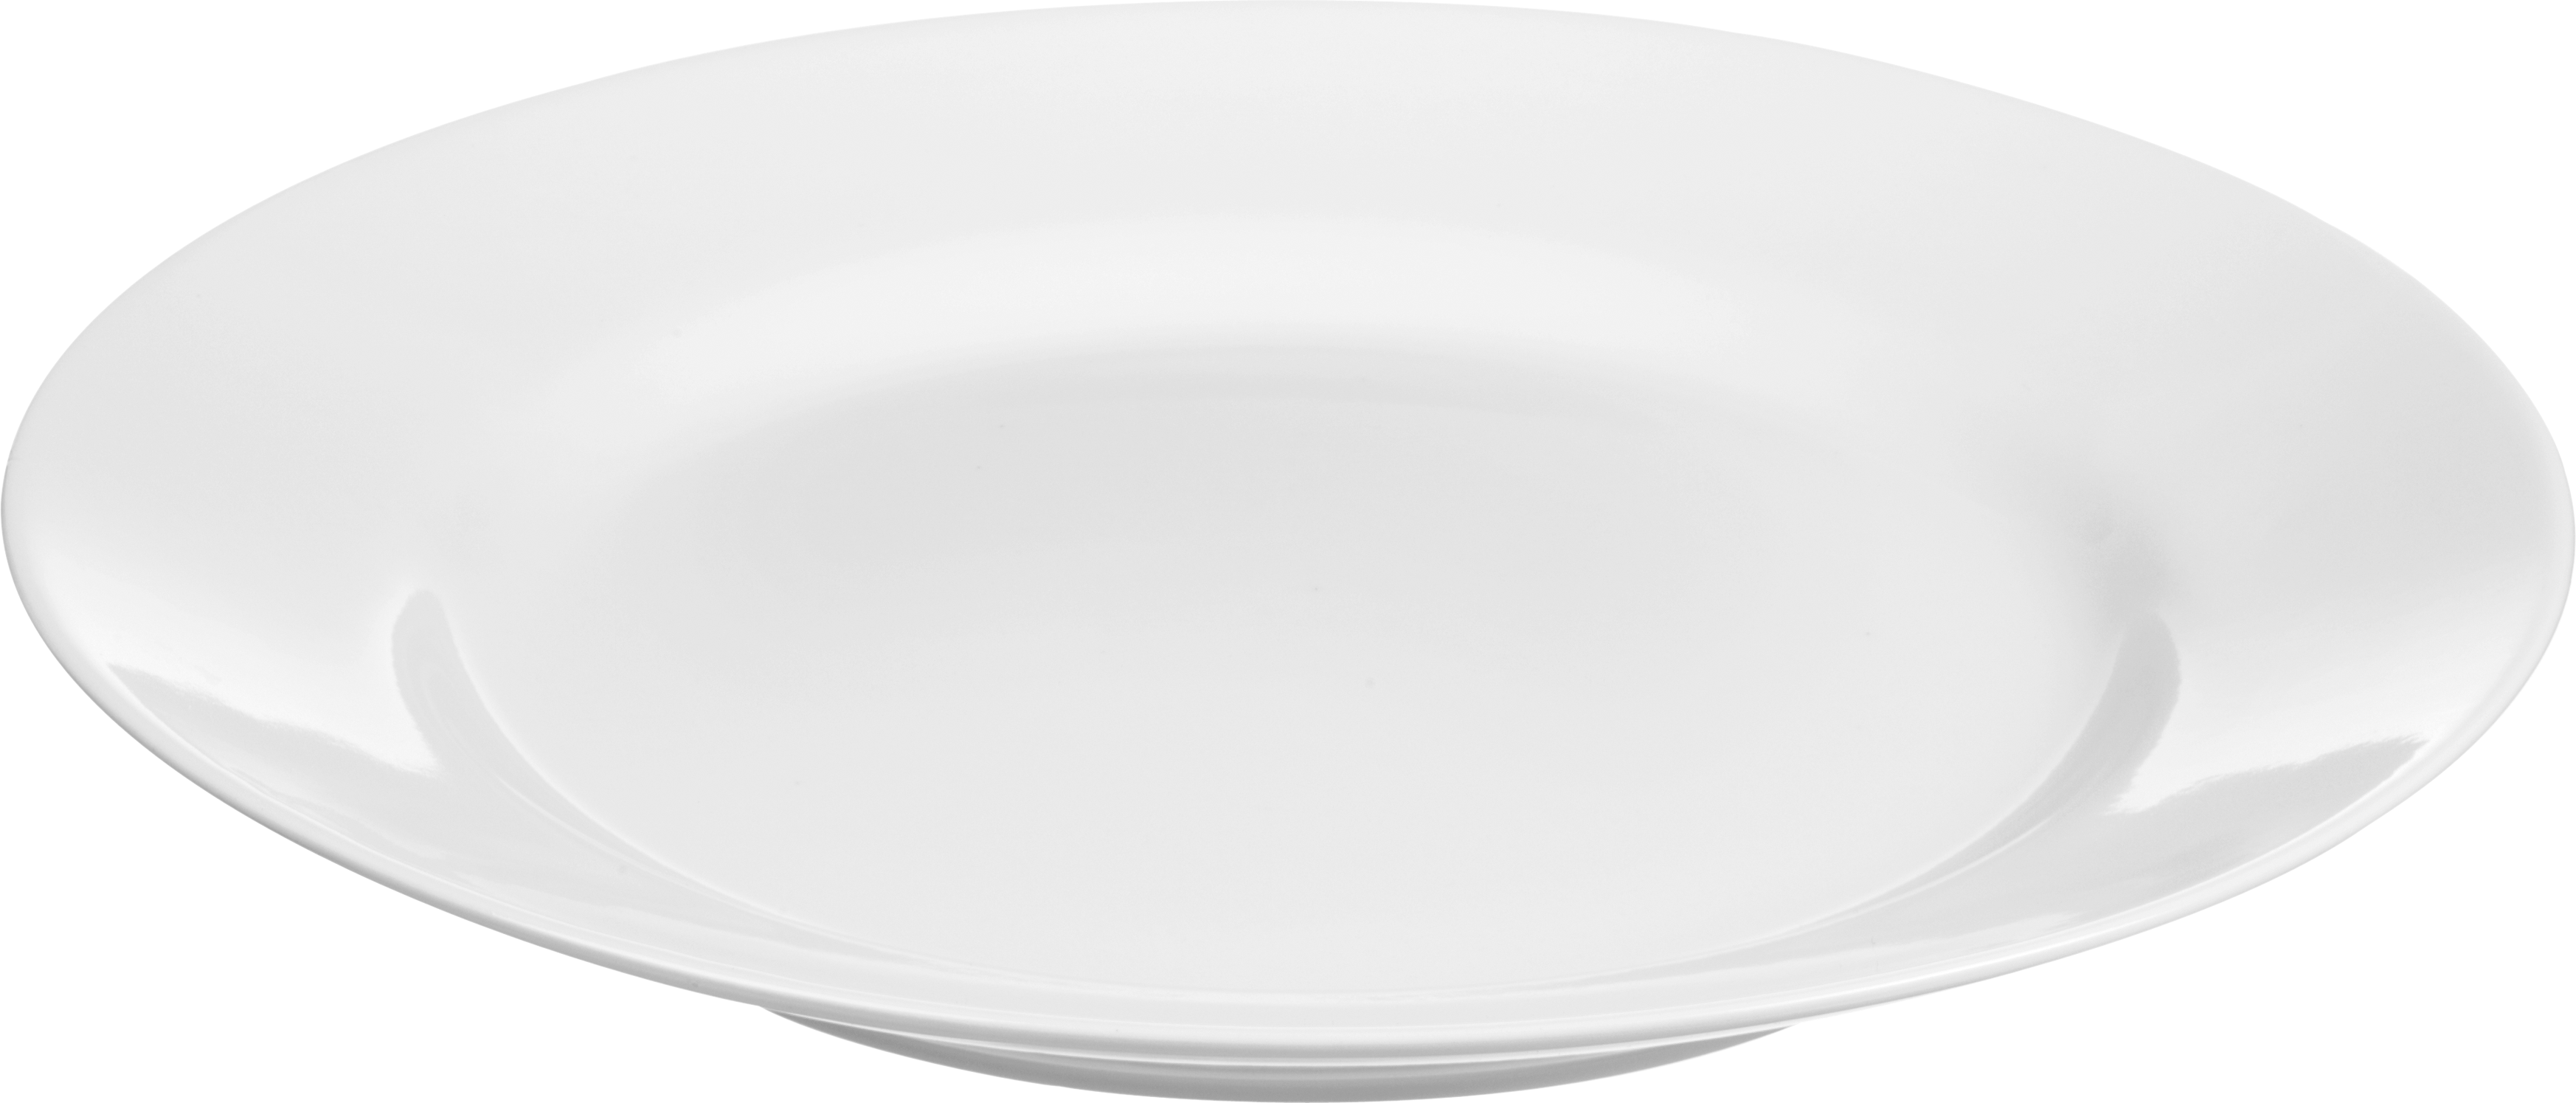 Plates PNG photo images free download, plate PNG.